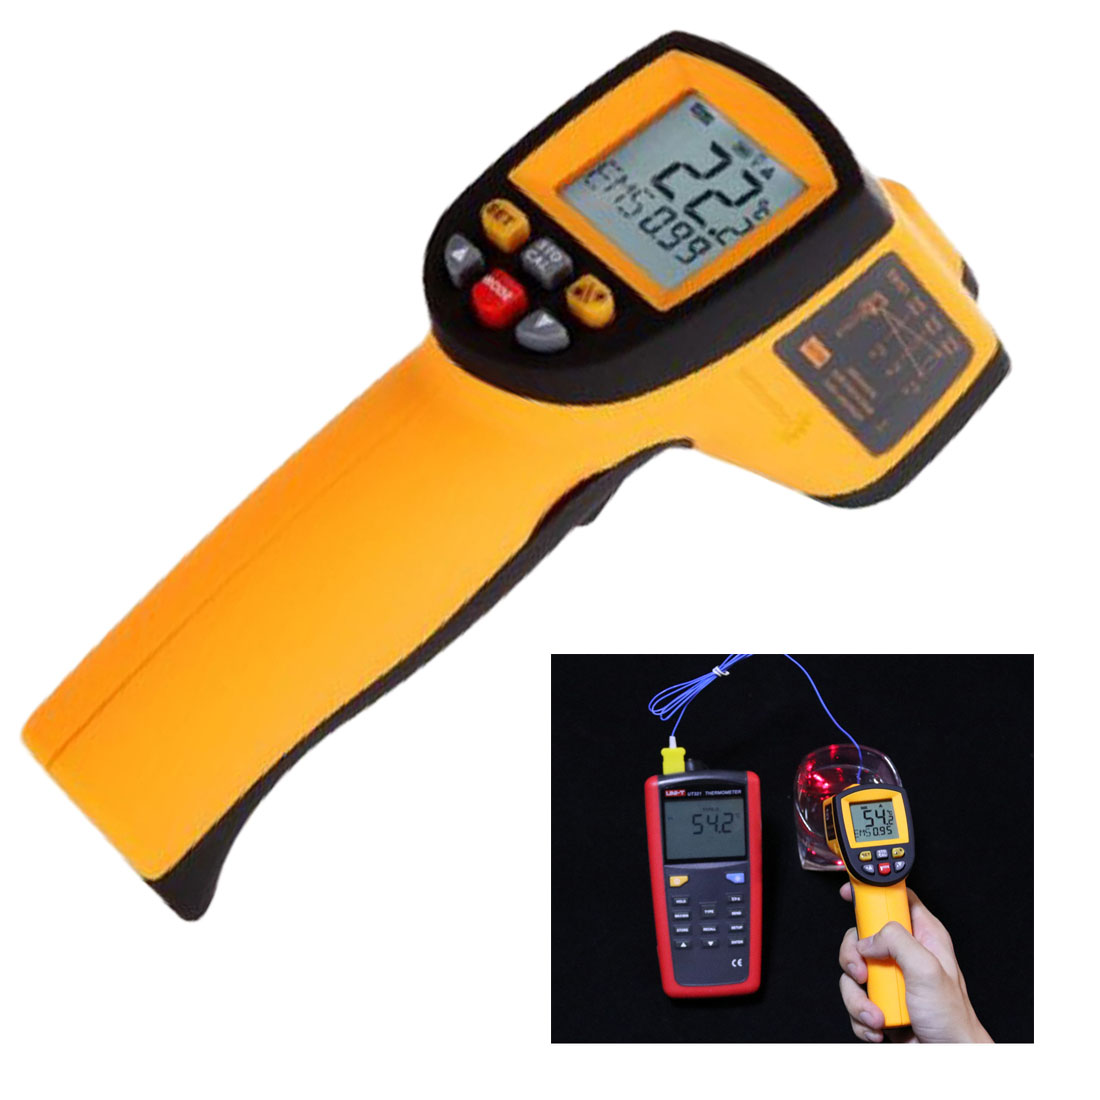 Digital Infrared Thermometer GM900 Laster Temperature Meter Non-contact LCD Gun Style Handheld -50-950C -58-1742F Pyrometer